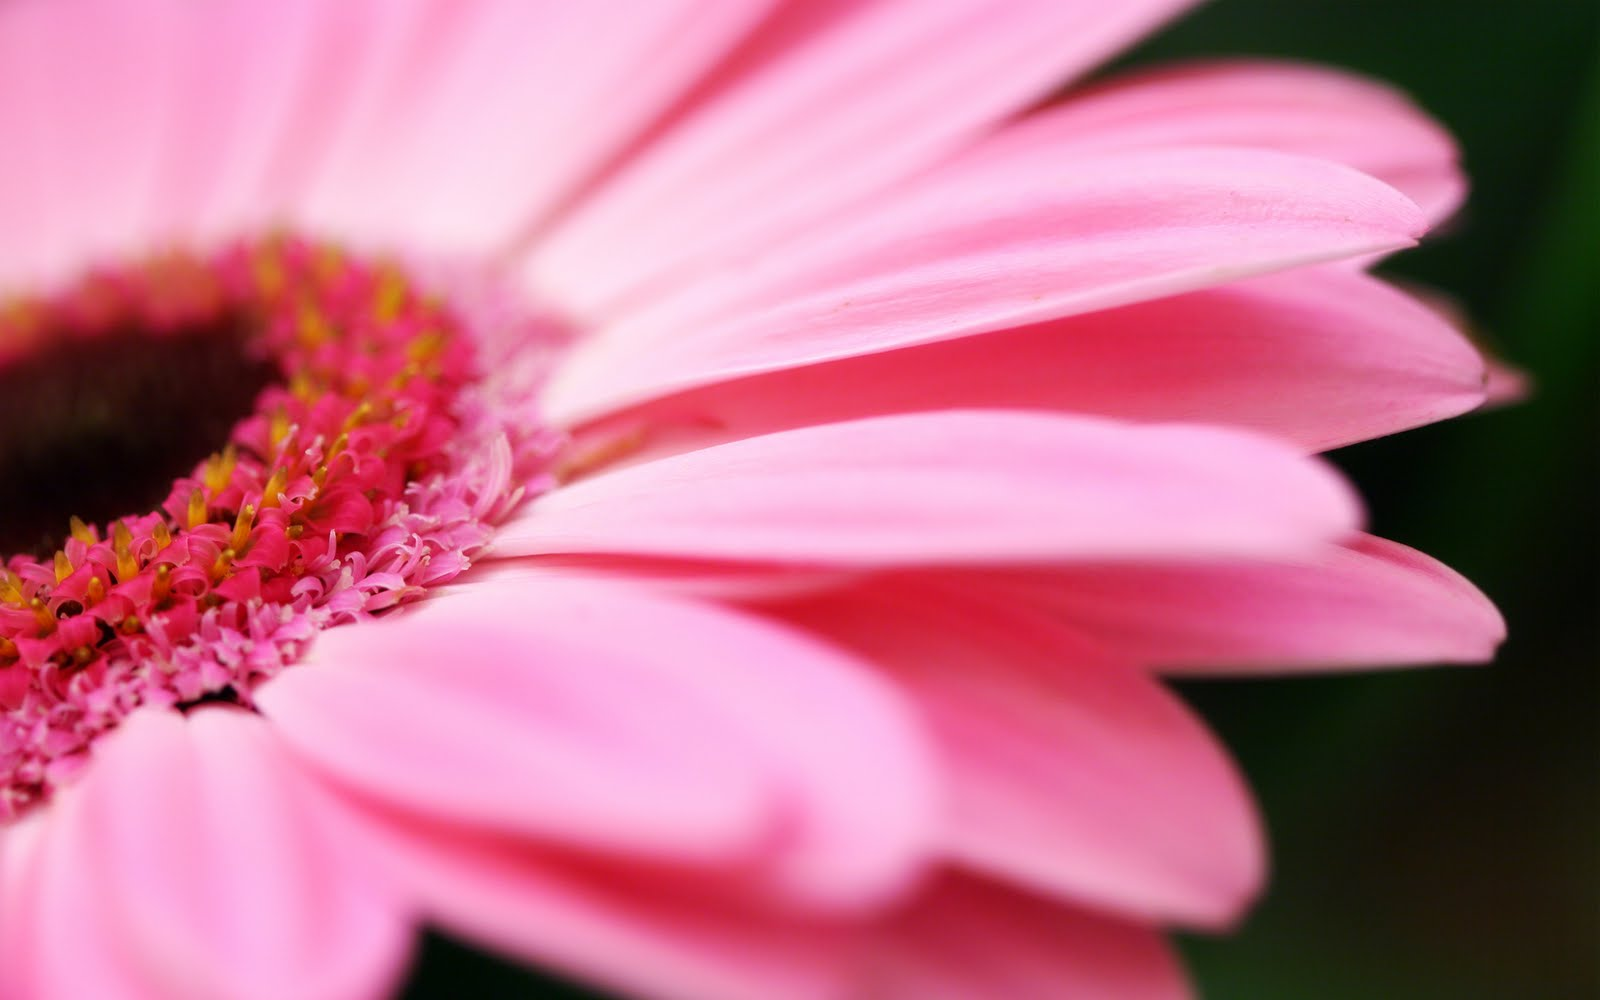 Cool wallpapers cool flowers wallpapers pack 1 - Pink flower wallpaper background ...